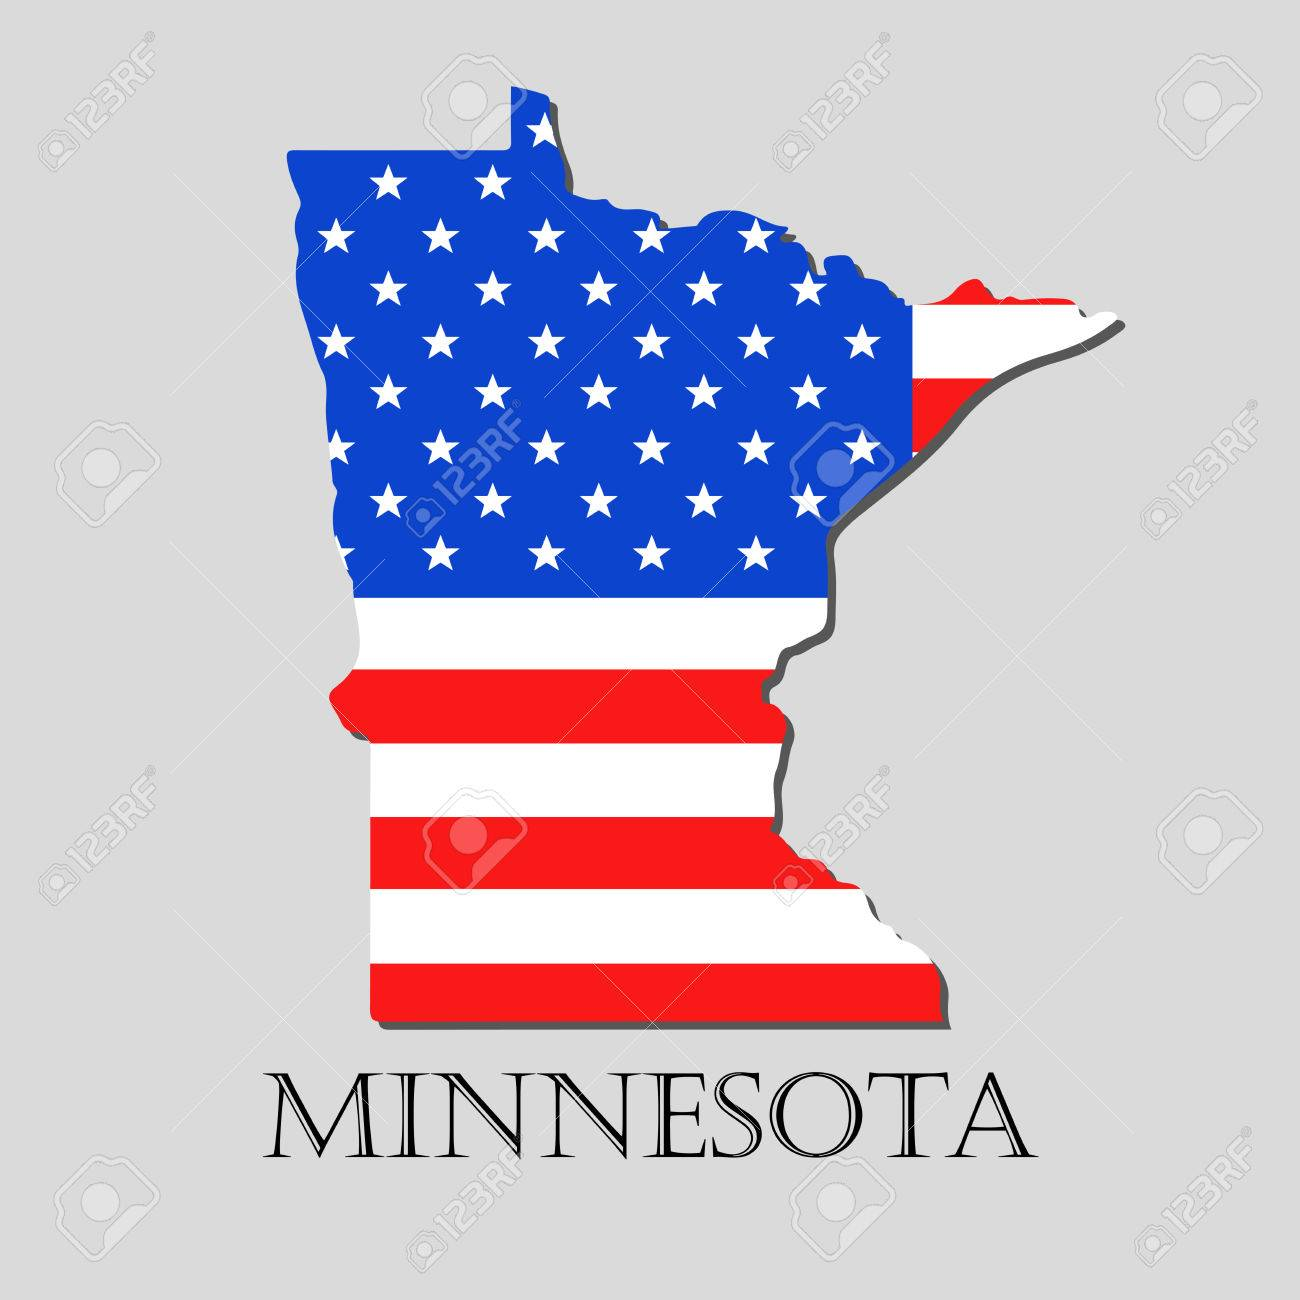 hight resolution of map of the state of minnesota and american flag illustration america flag map vector